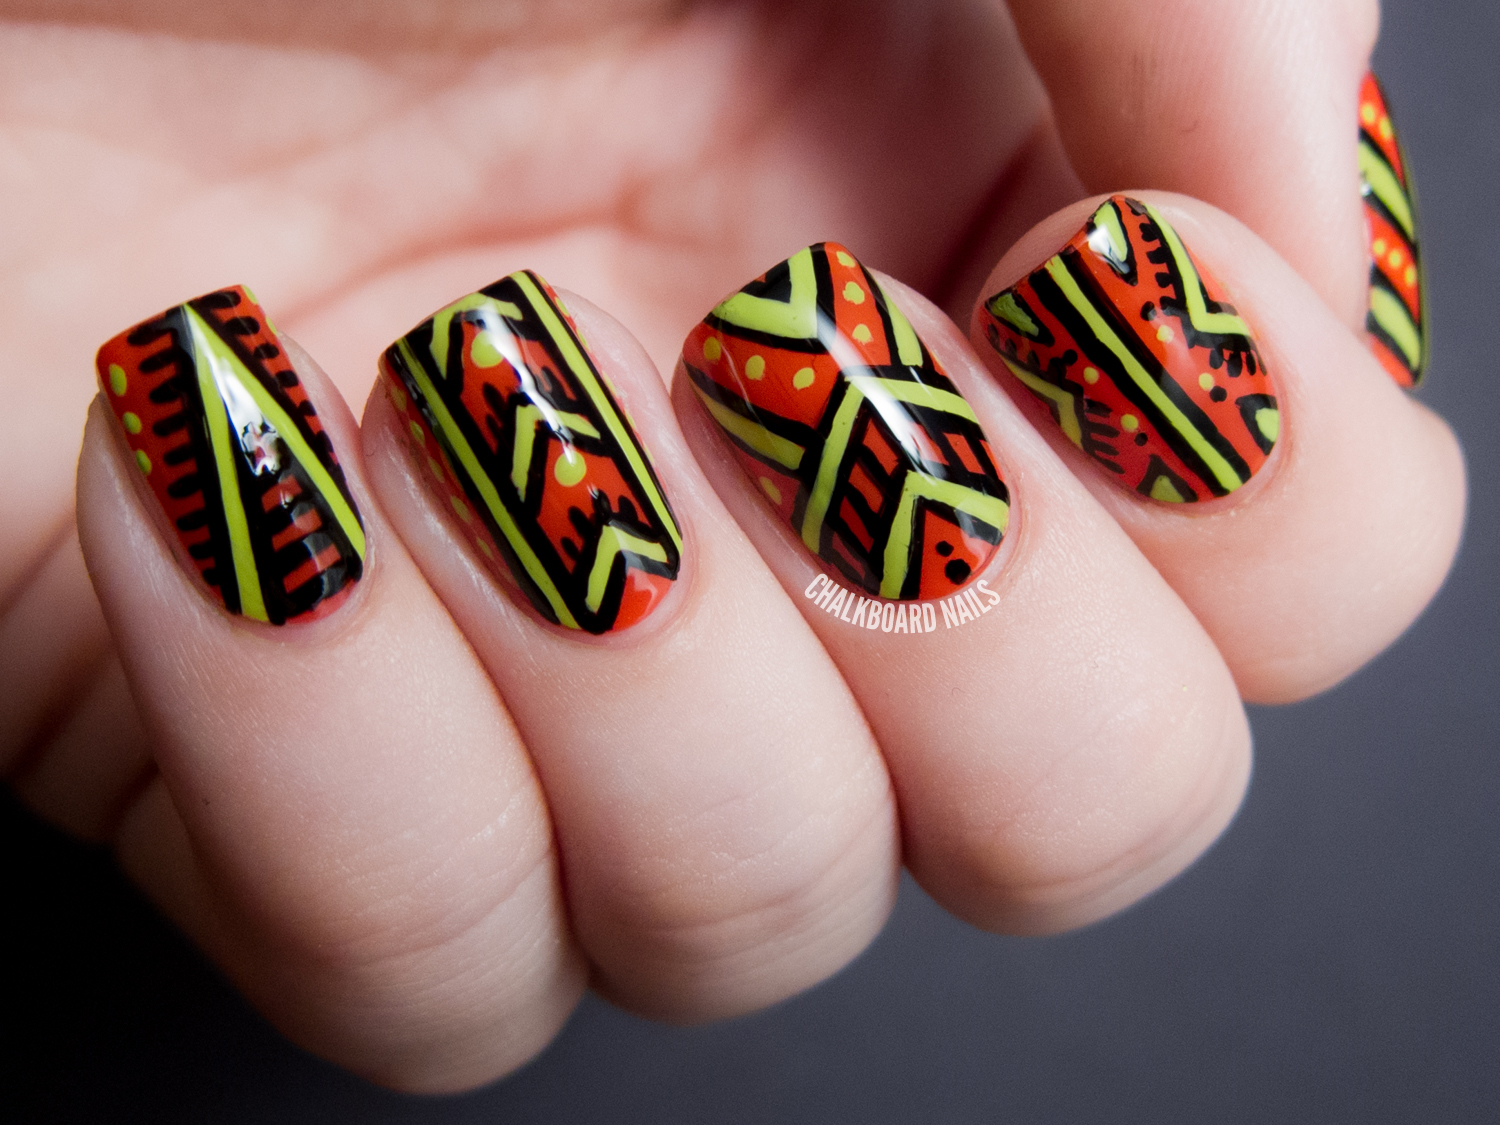 African Patterned - Nicole by OPI Tink Nail Art | Chalkboard Nails ...